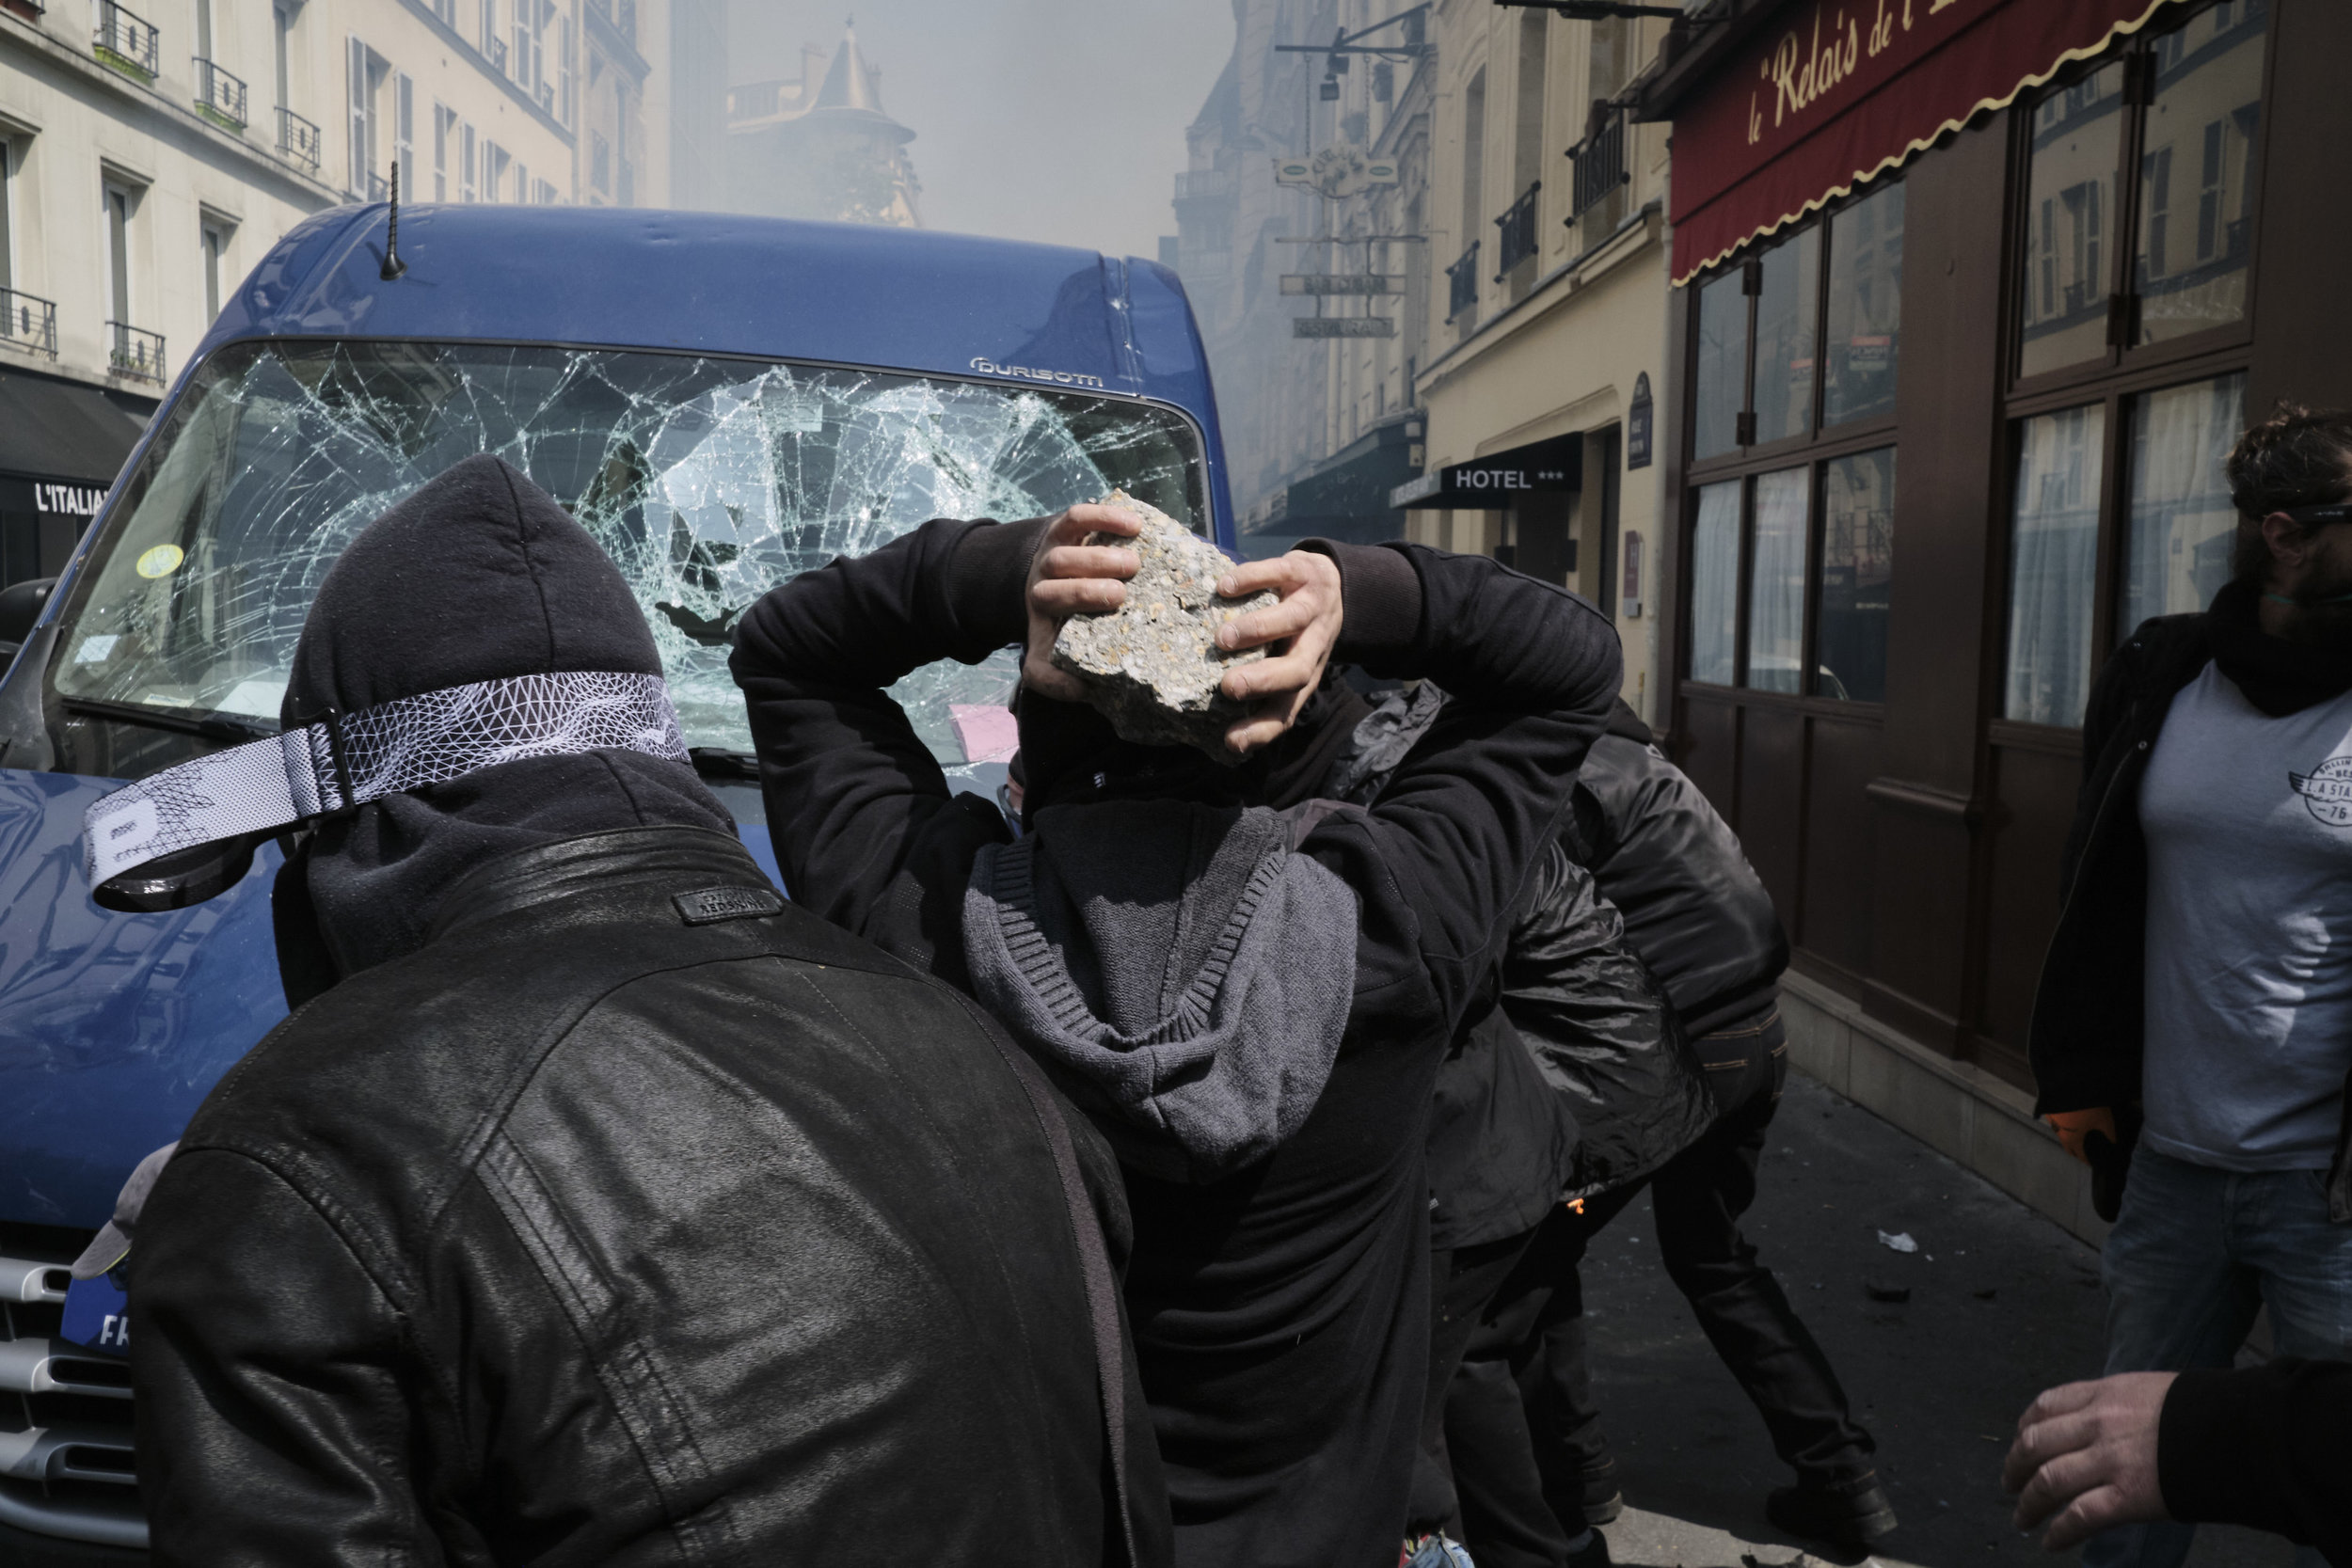 Anti-fascist participants of the protests are destroying a parked van after pushing back the police to the Rui Vavin.